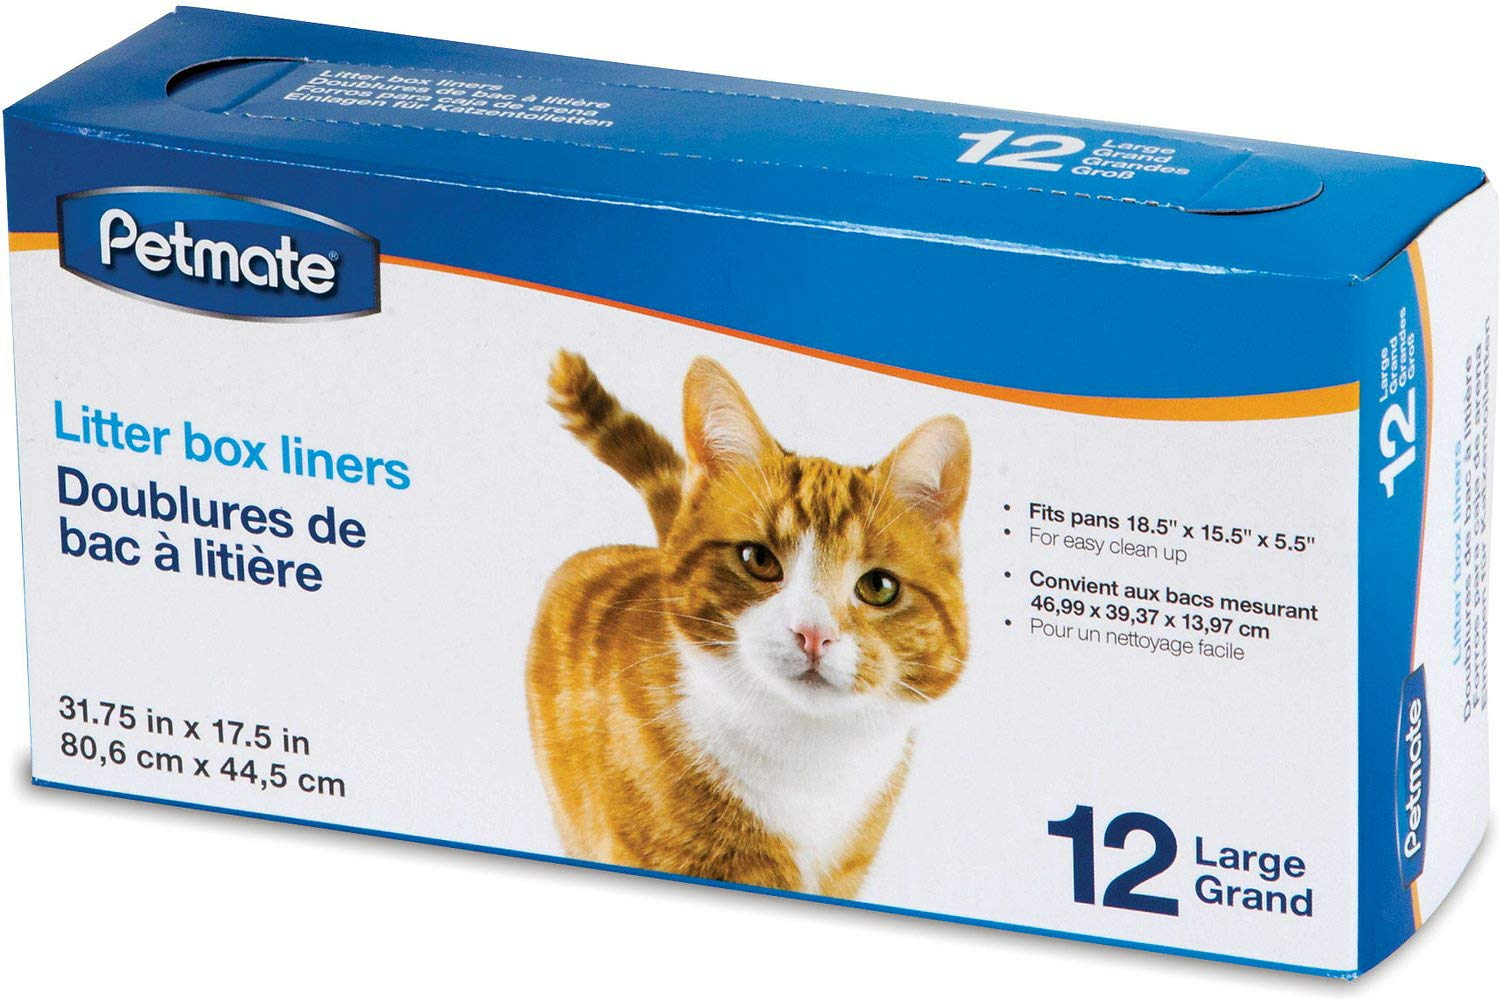 Petmate Litter Pan Liners, Large, 12 Count, 12 Pack by Petmate